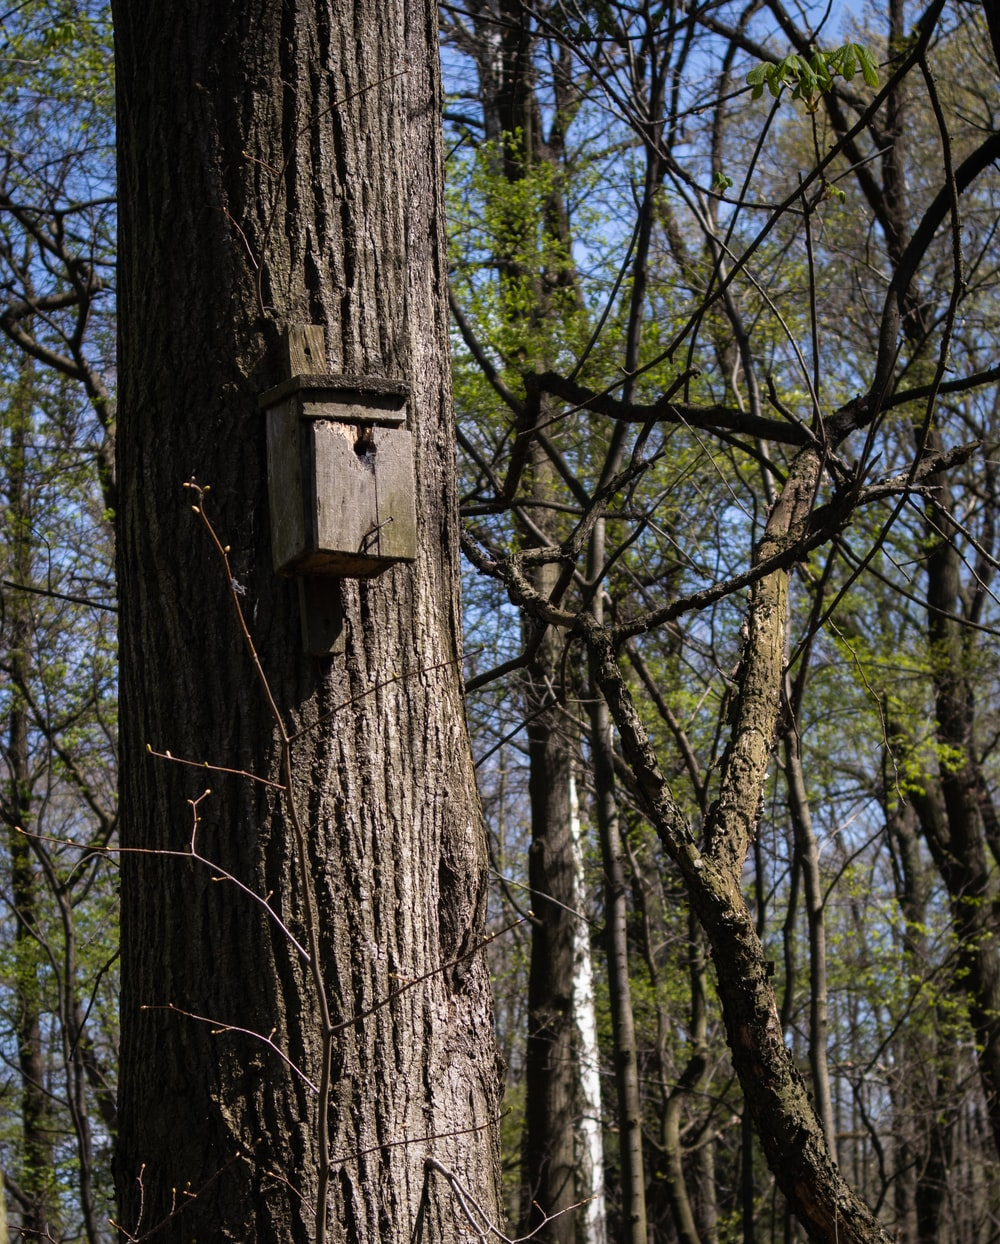 brown wooden birdhouse on brown tree trunk